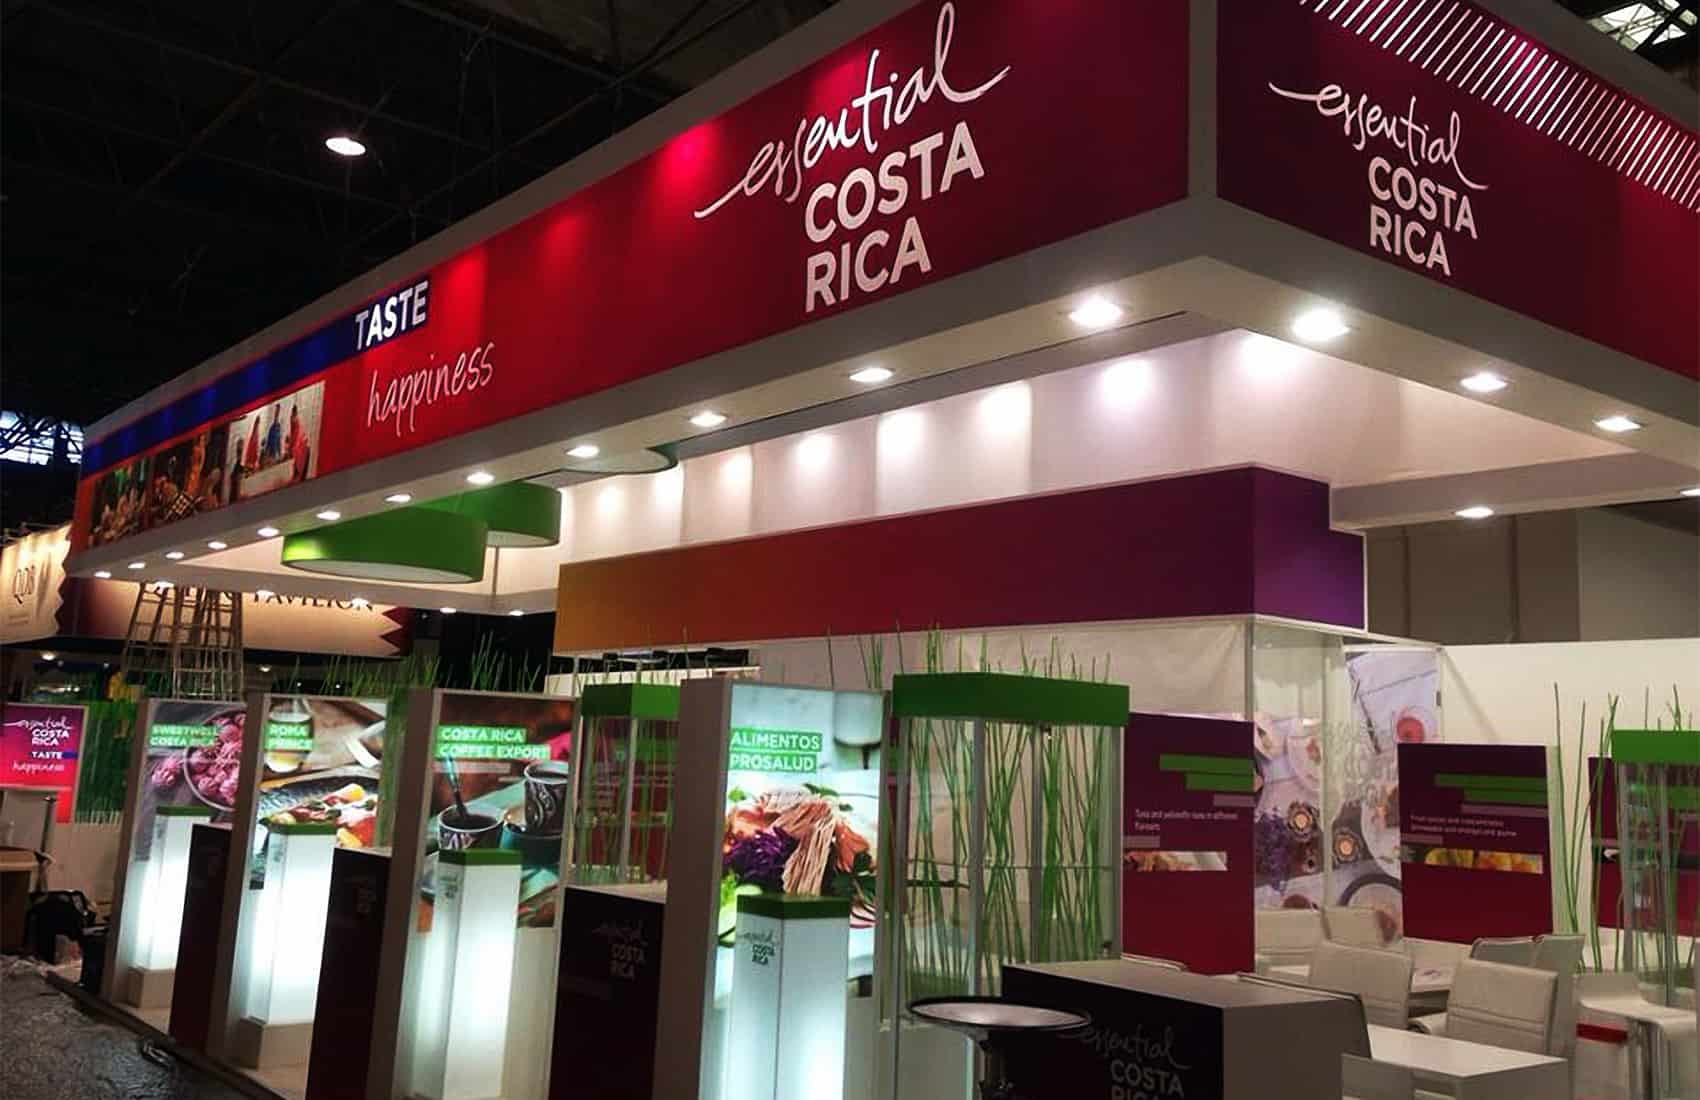 Costa Rica stand at SIAL 2014